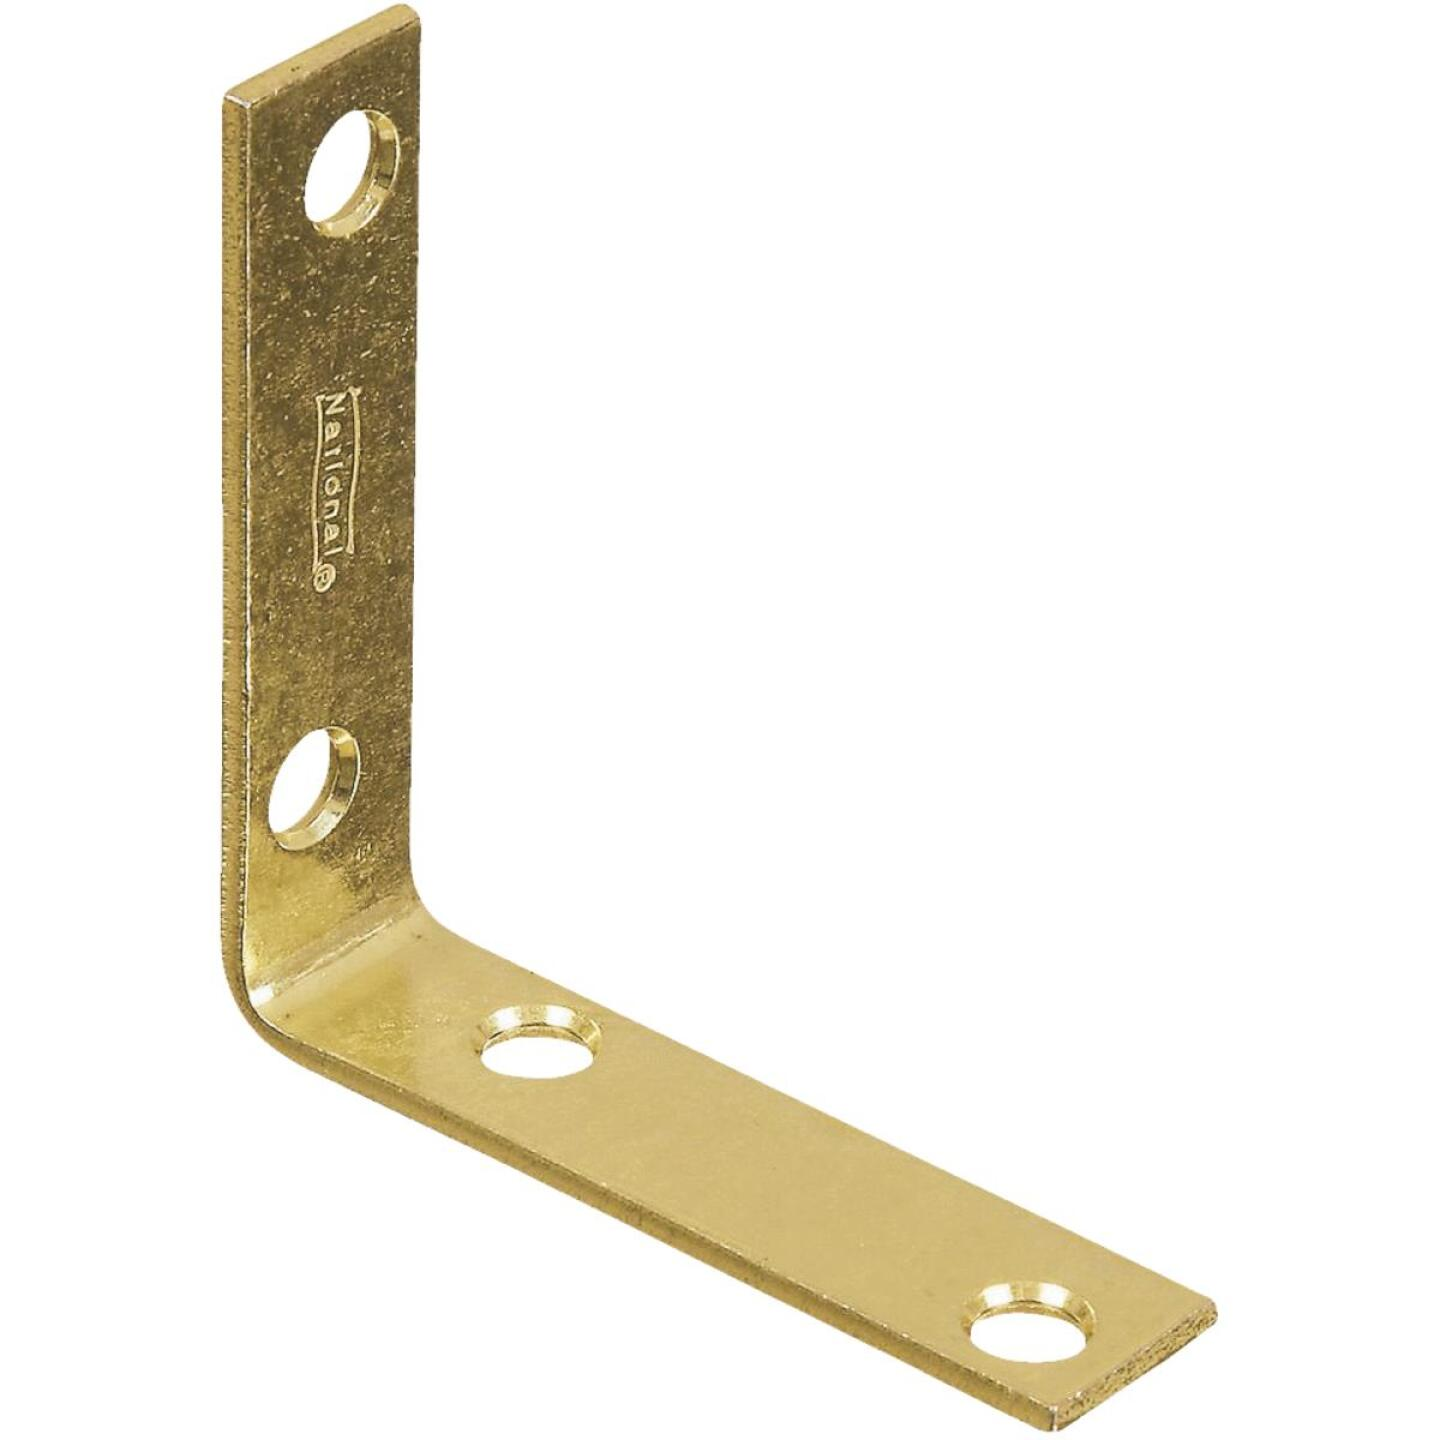 National Catalog V115 2-1/2 In. x 5/8 In. Brass Steel Corner Brace (4-Count) Image 1